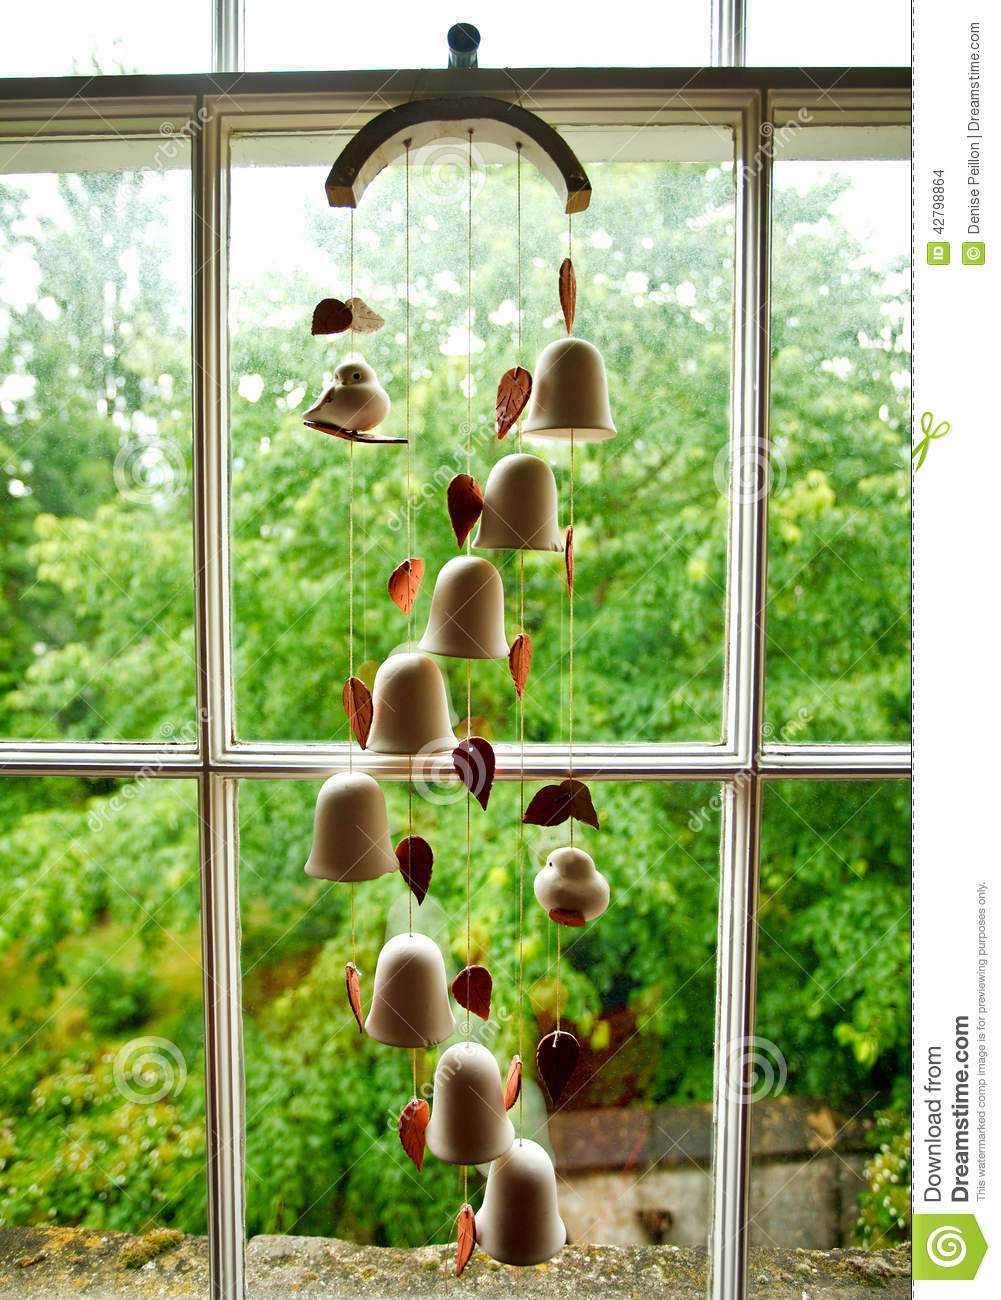 Wind Chime Of Ceramic Bells Stock Photo - Image of bells, inside